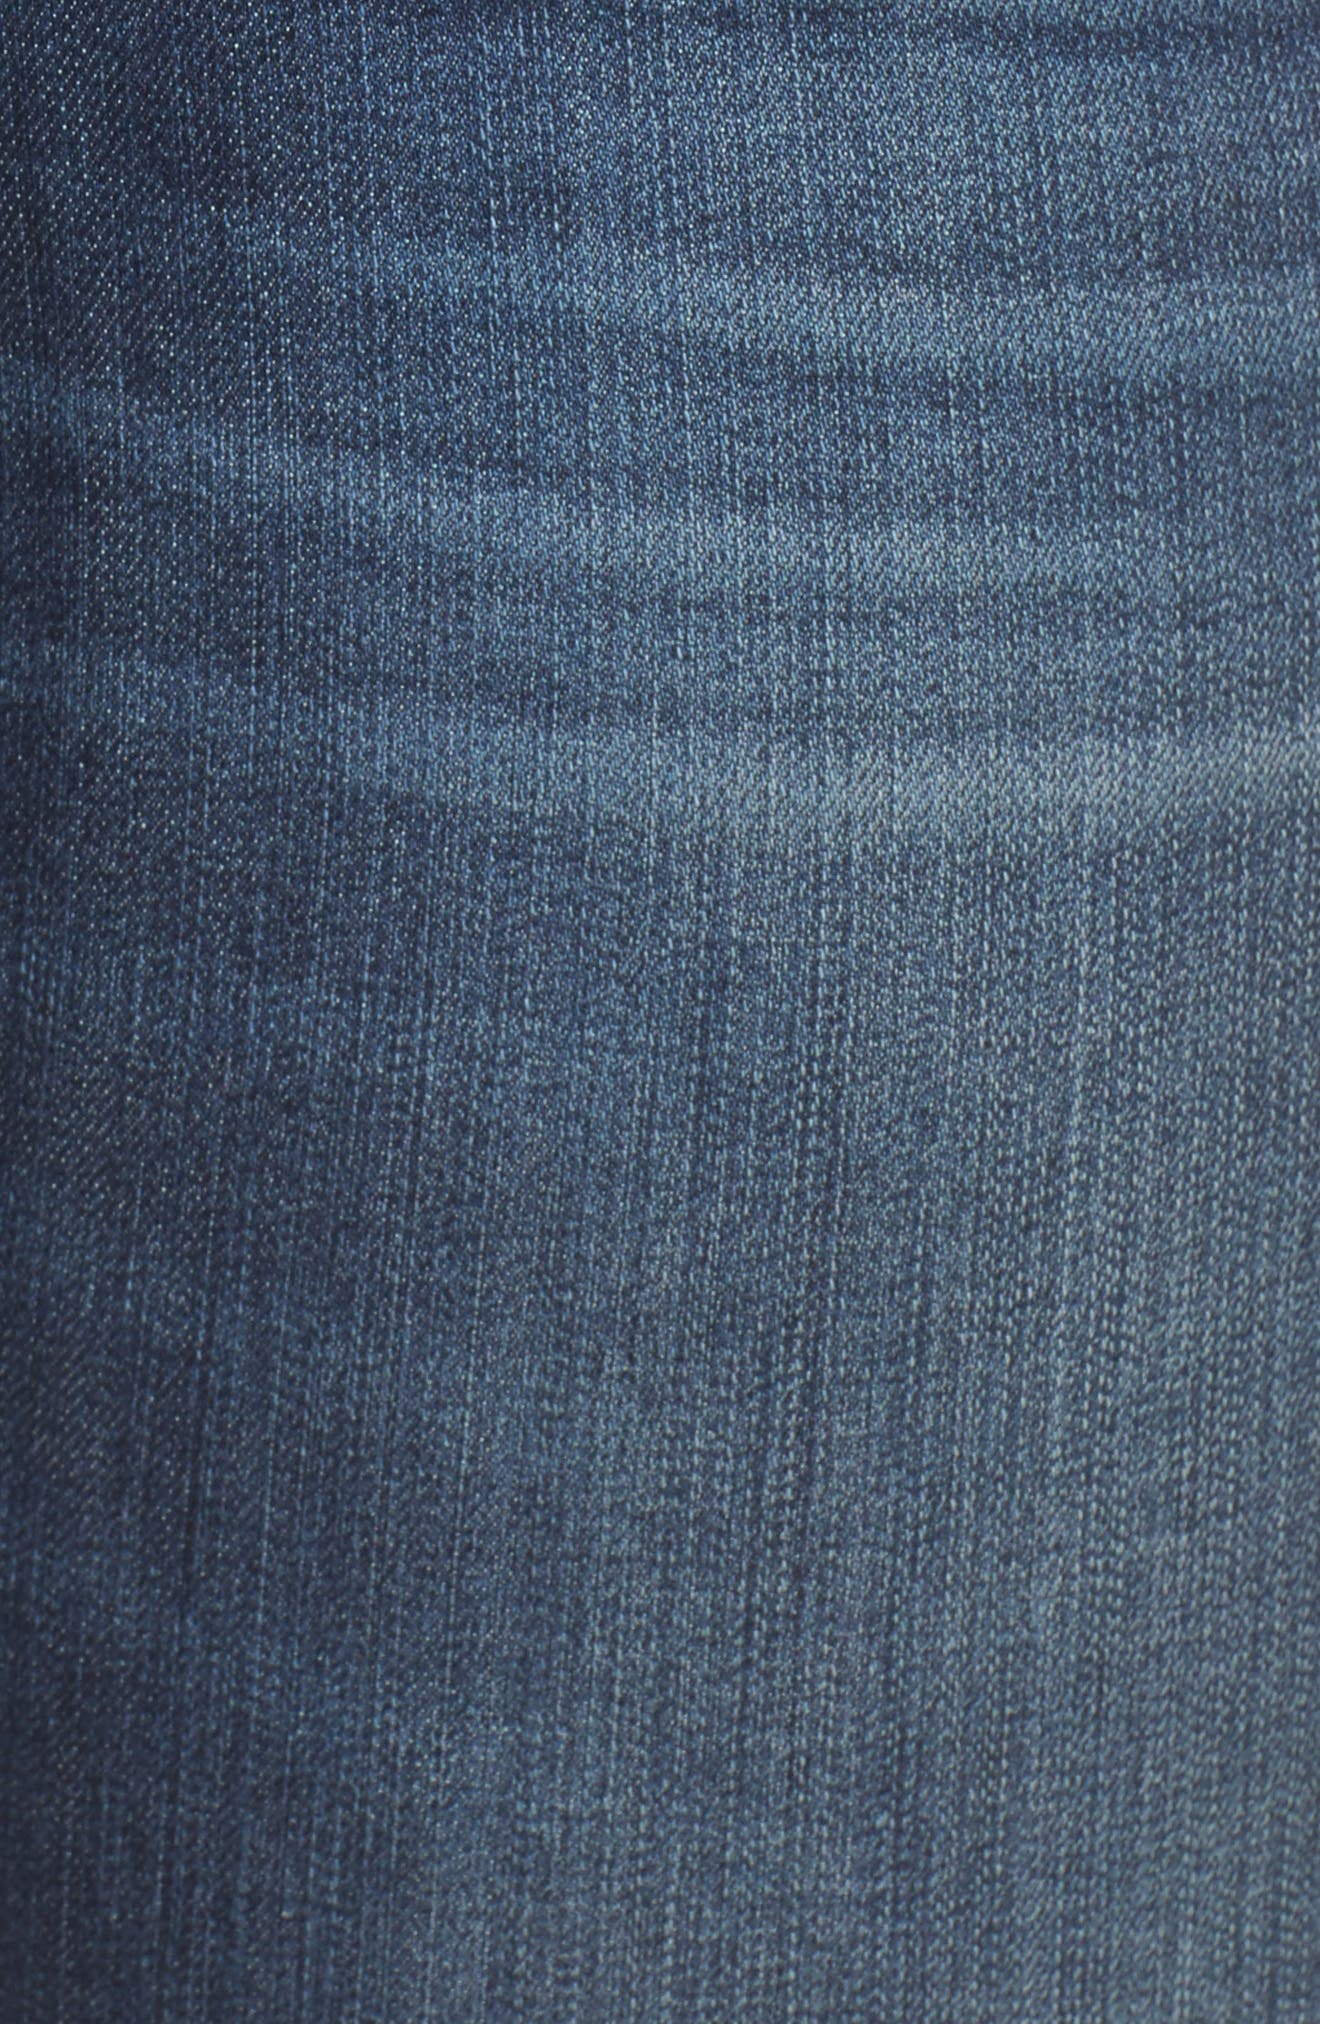 Reese Side Stripe Uneven Ankle Jeans,                             Alternate thumbnail 5, color,                             ANALYZED